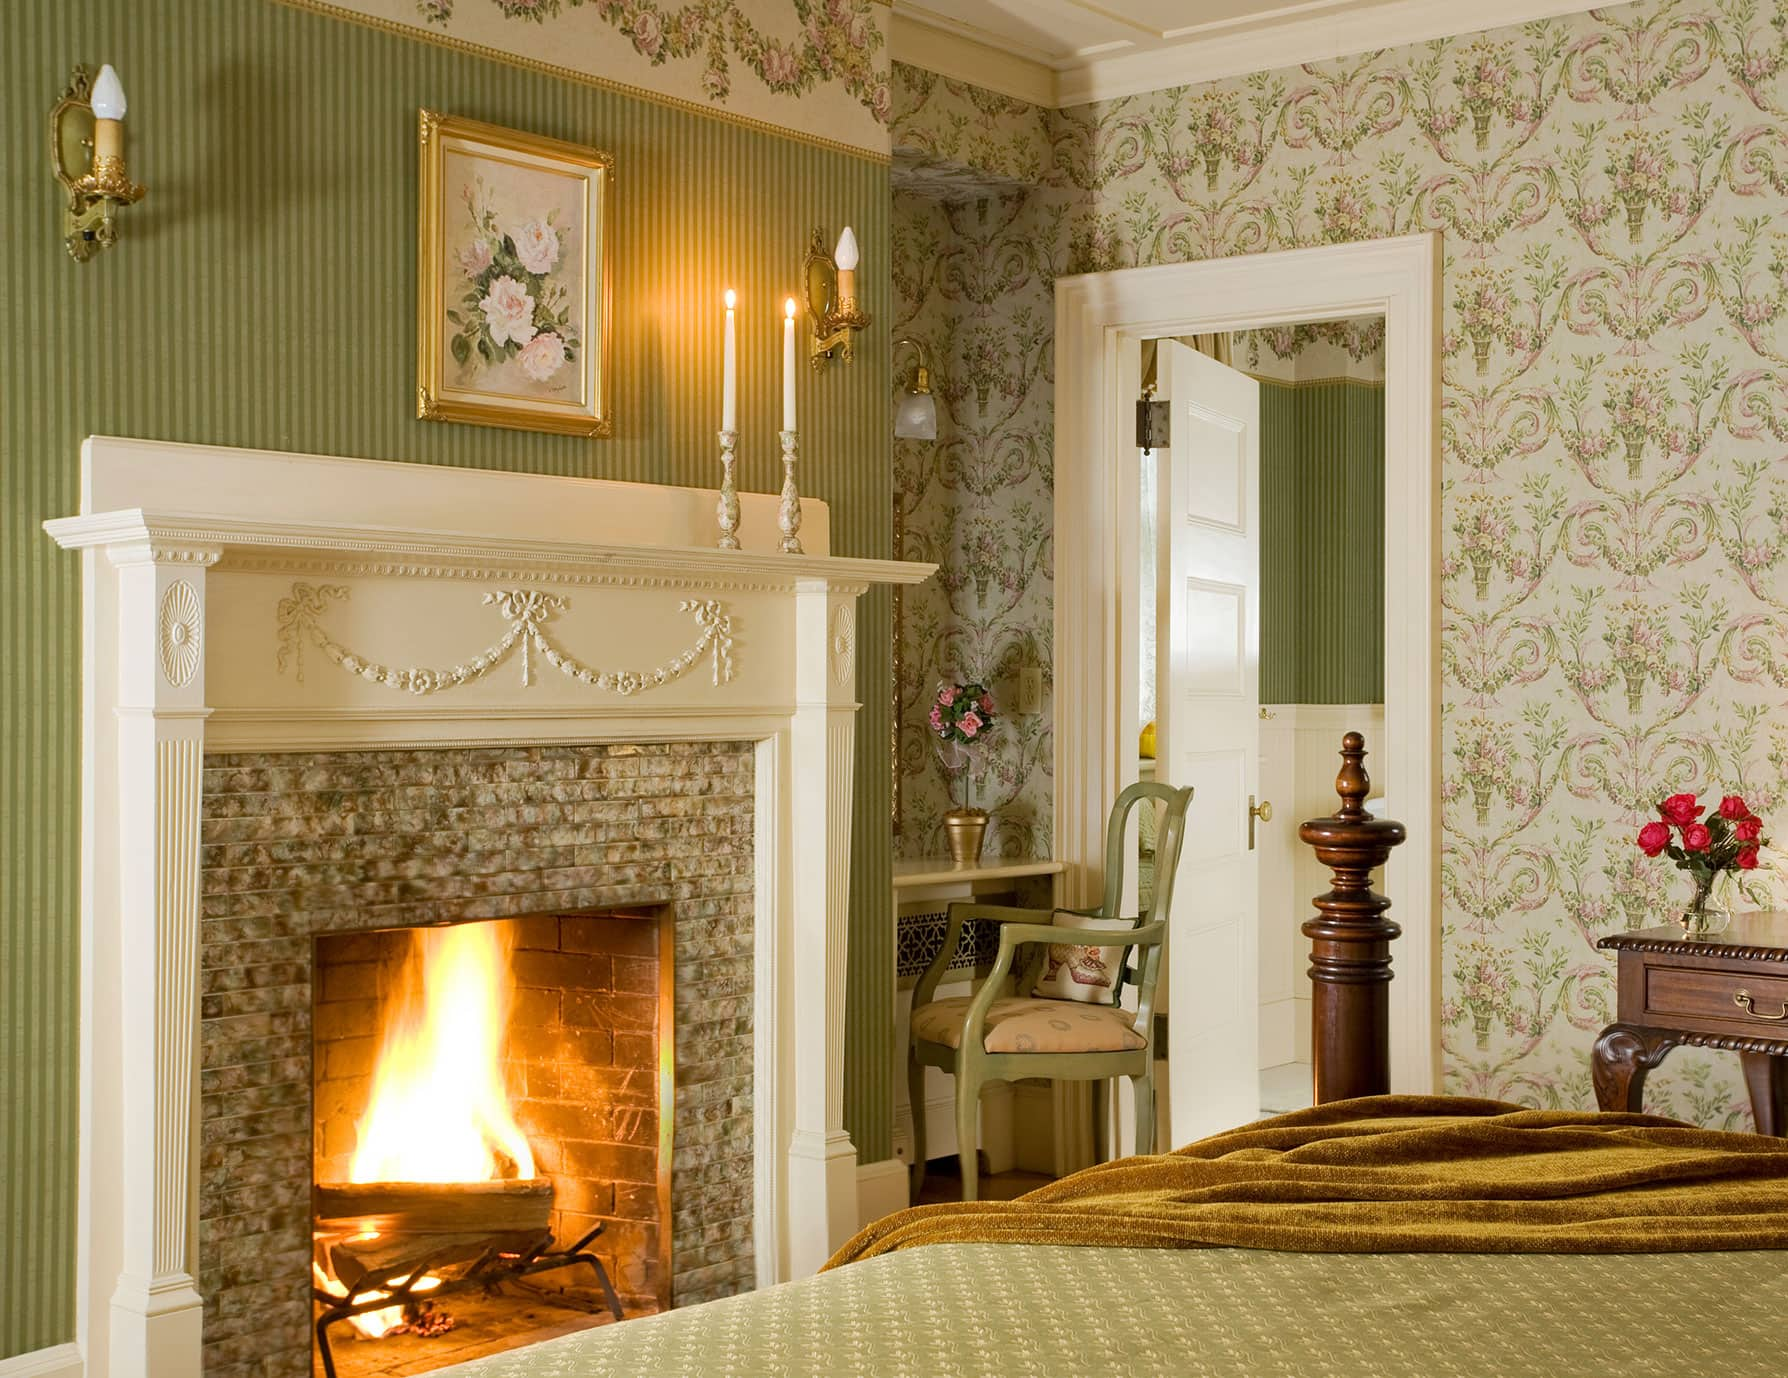 Warm fireplace at the foot of the bed in Room 1